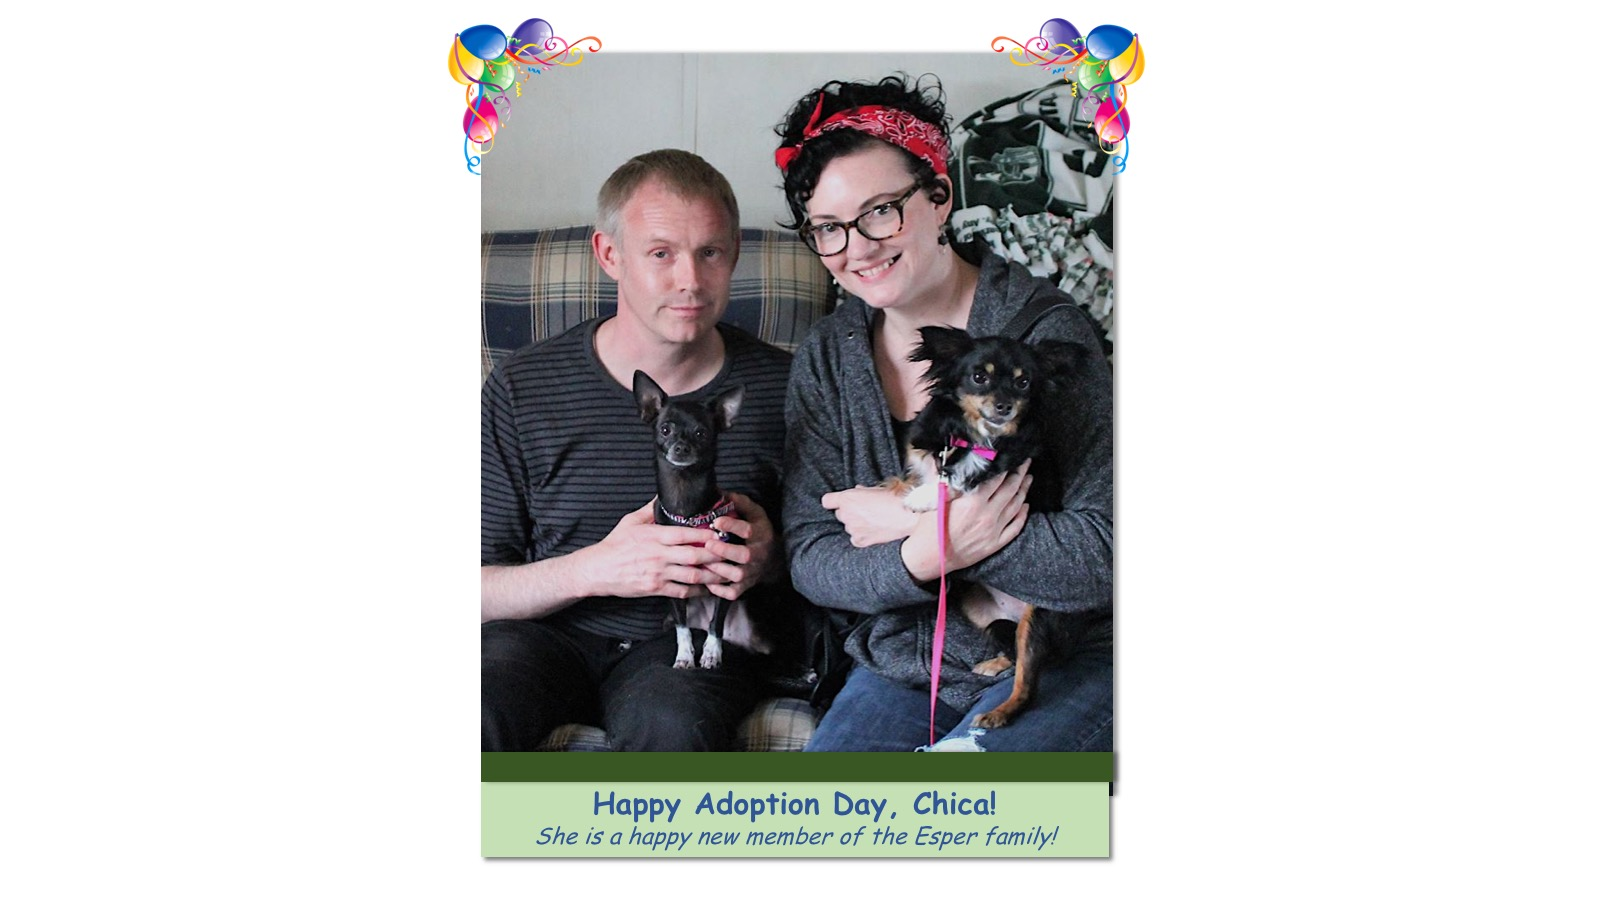 Chica_Adoption_Photo_2018.jpg